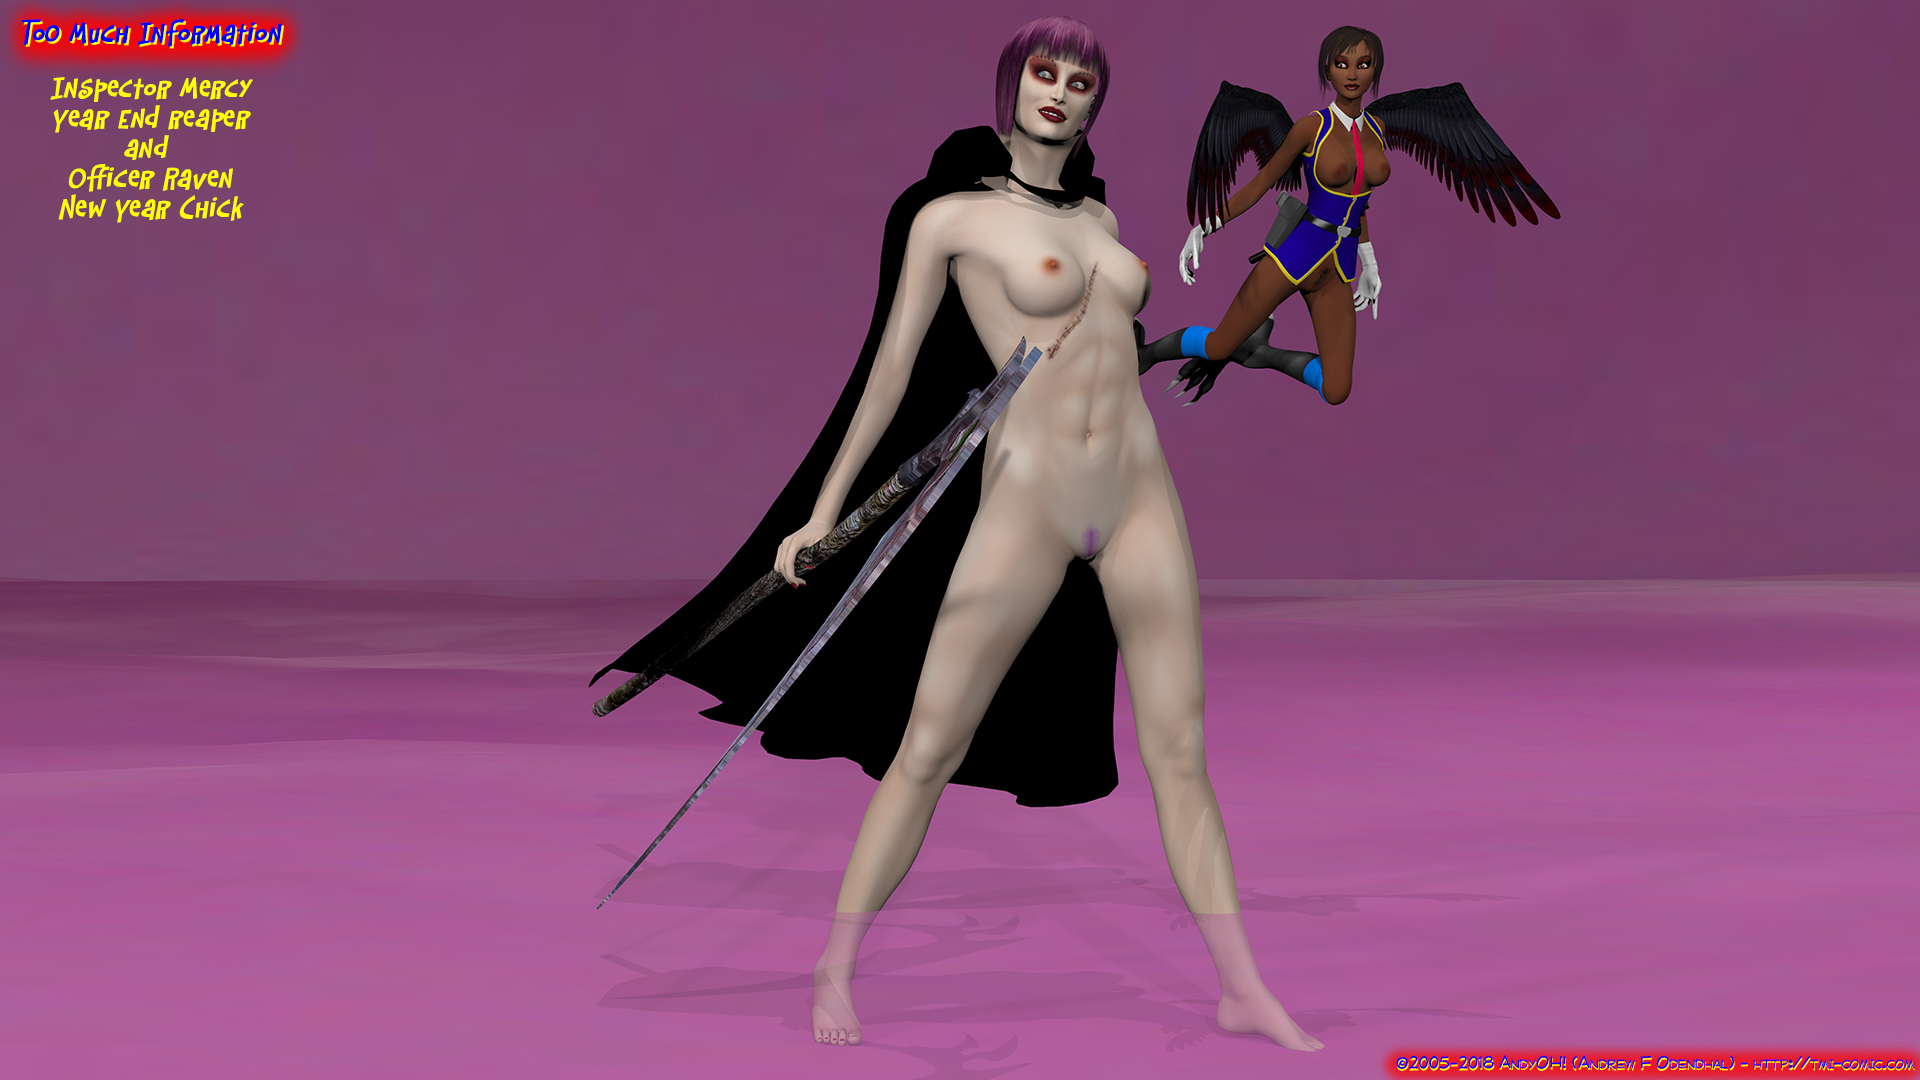 Mercy_and_Raven-190102_p19qP2PF